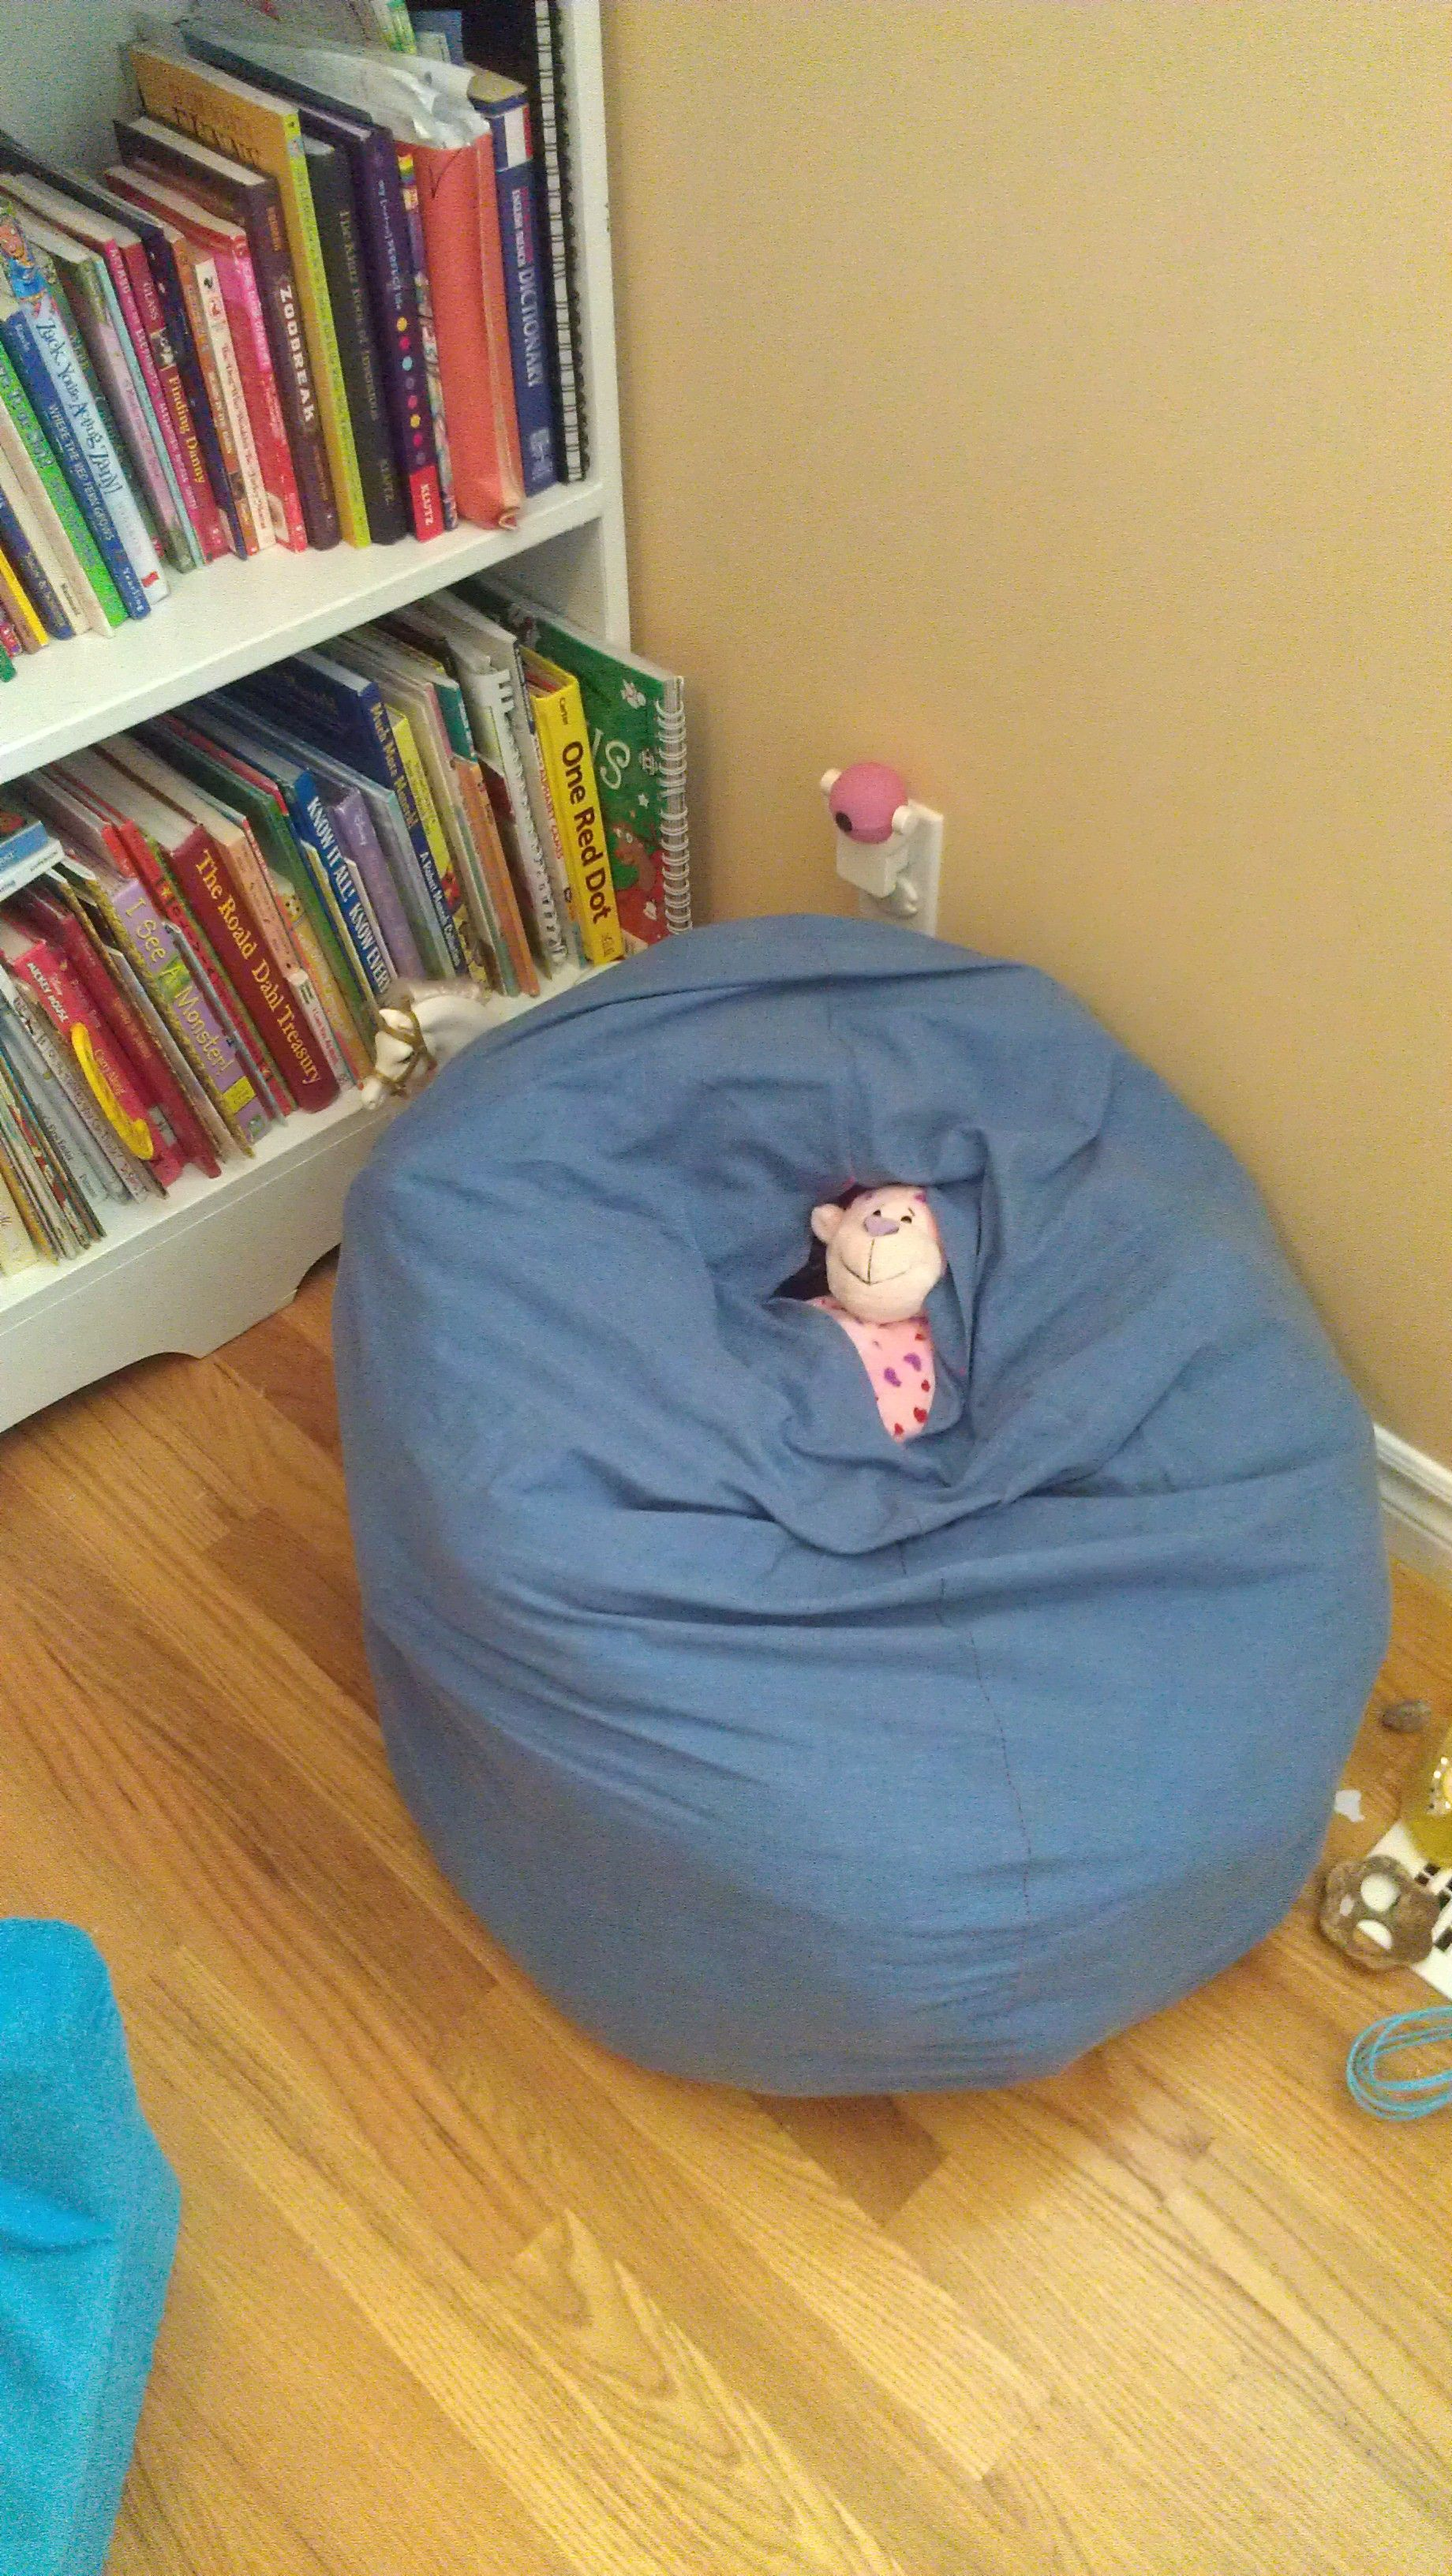 No Sew Bean Bag Chair Fishing Maplestory 2 Made A Beanbag Out Of An Old Sheet Filled It With